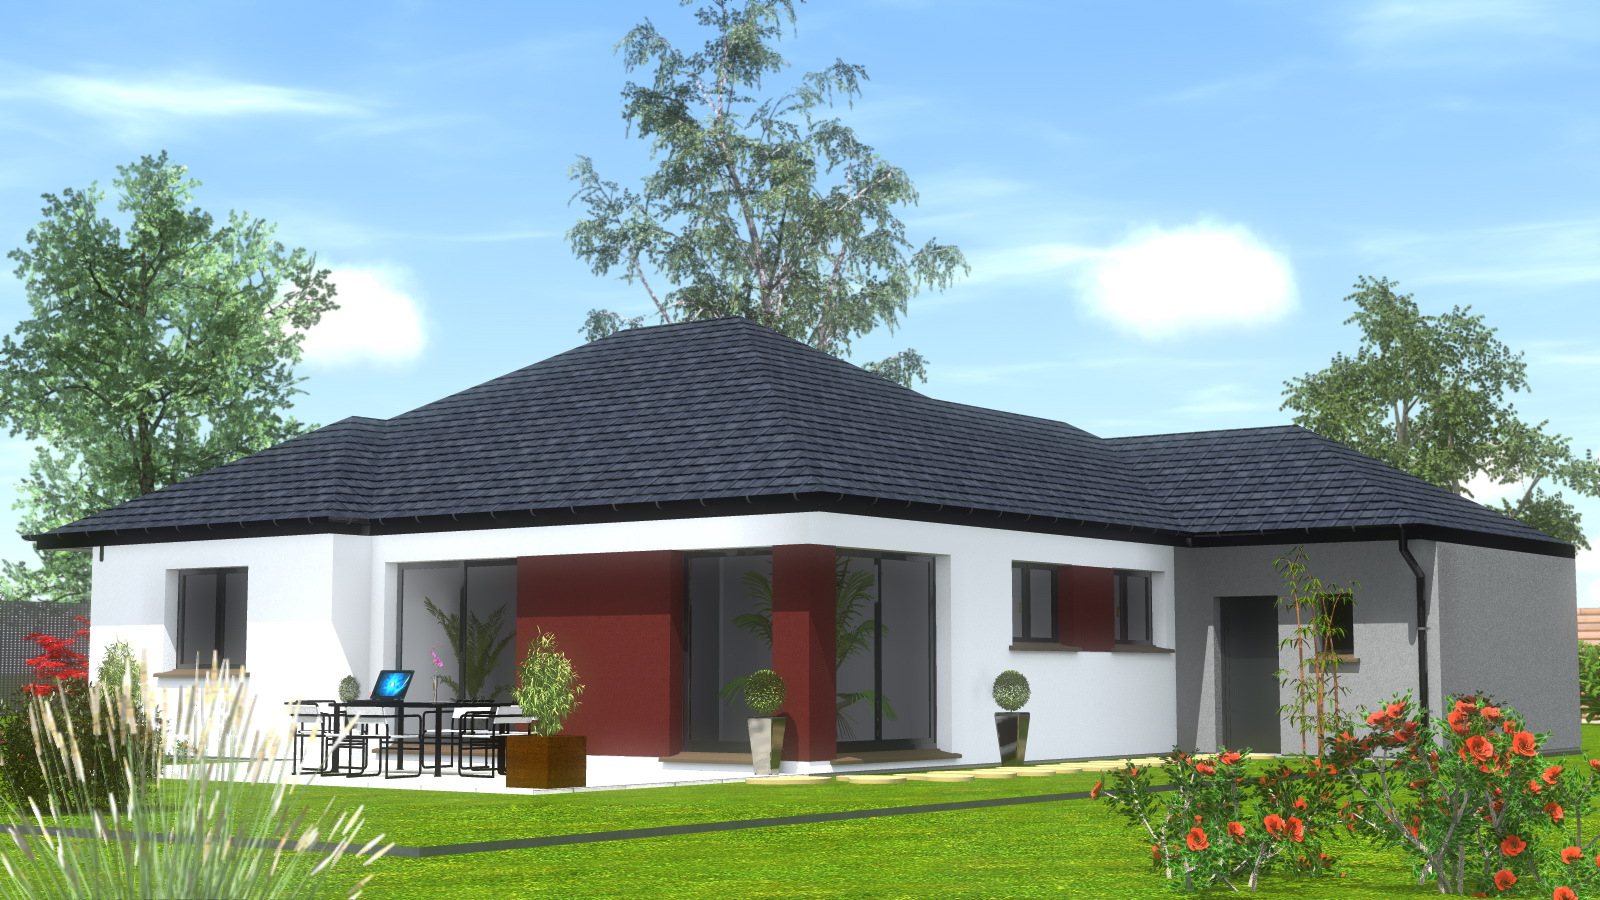 Construction maison de plain pied maisons begi - Modele de maison contemporaine plain pied ...